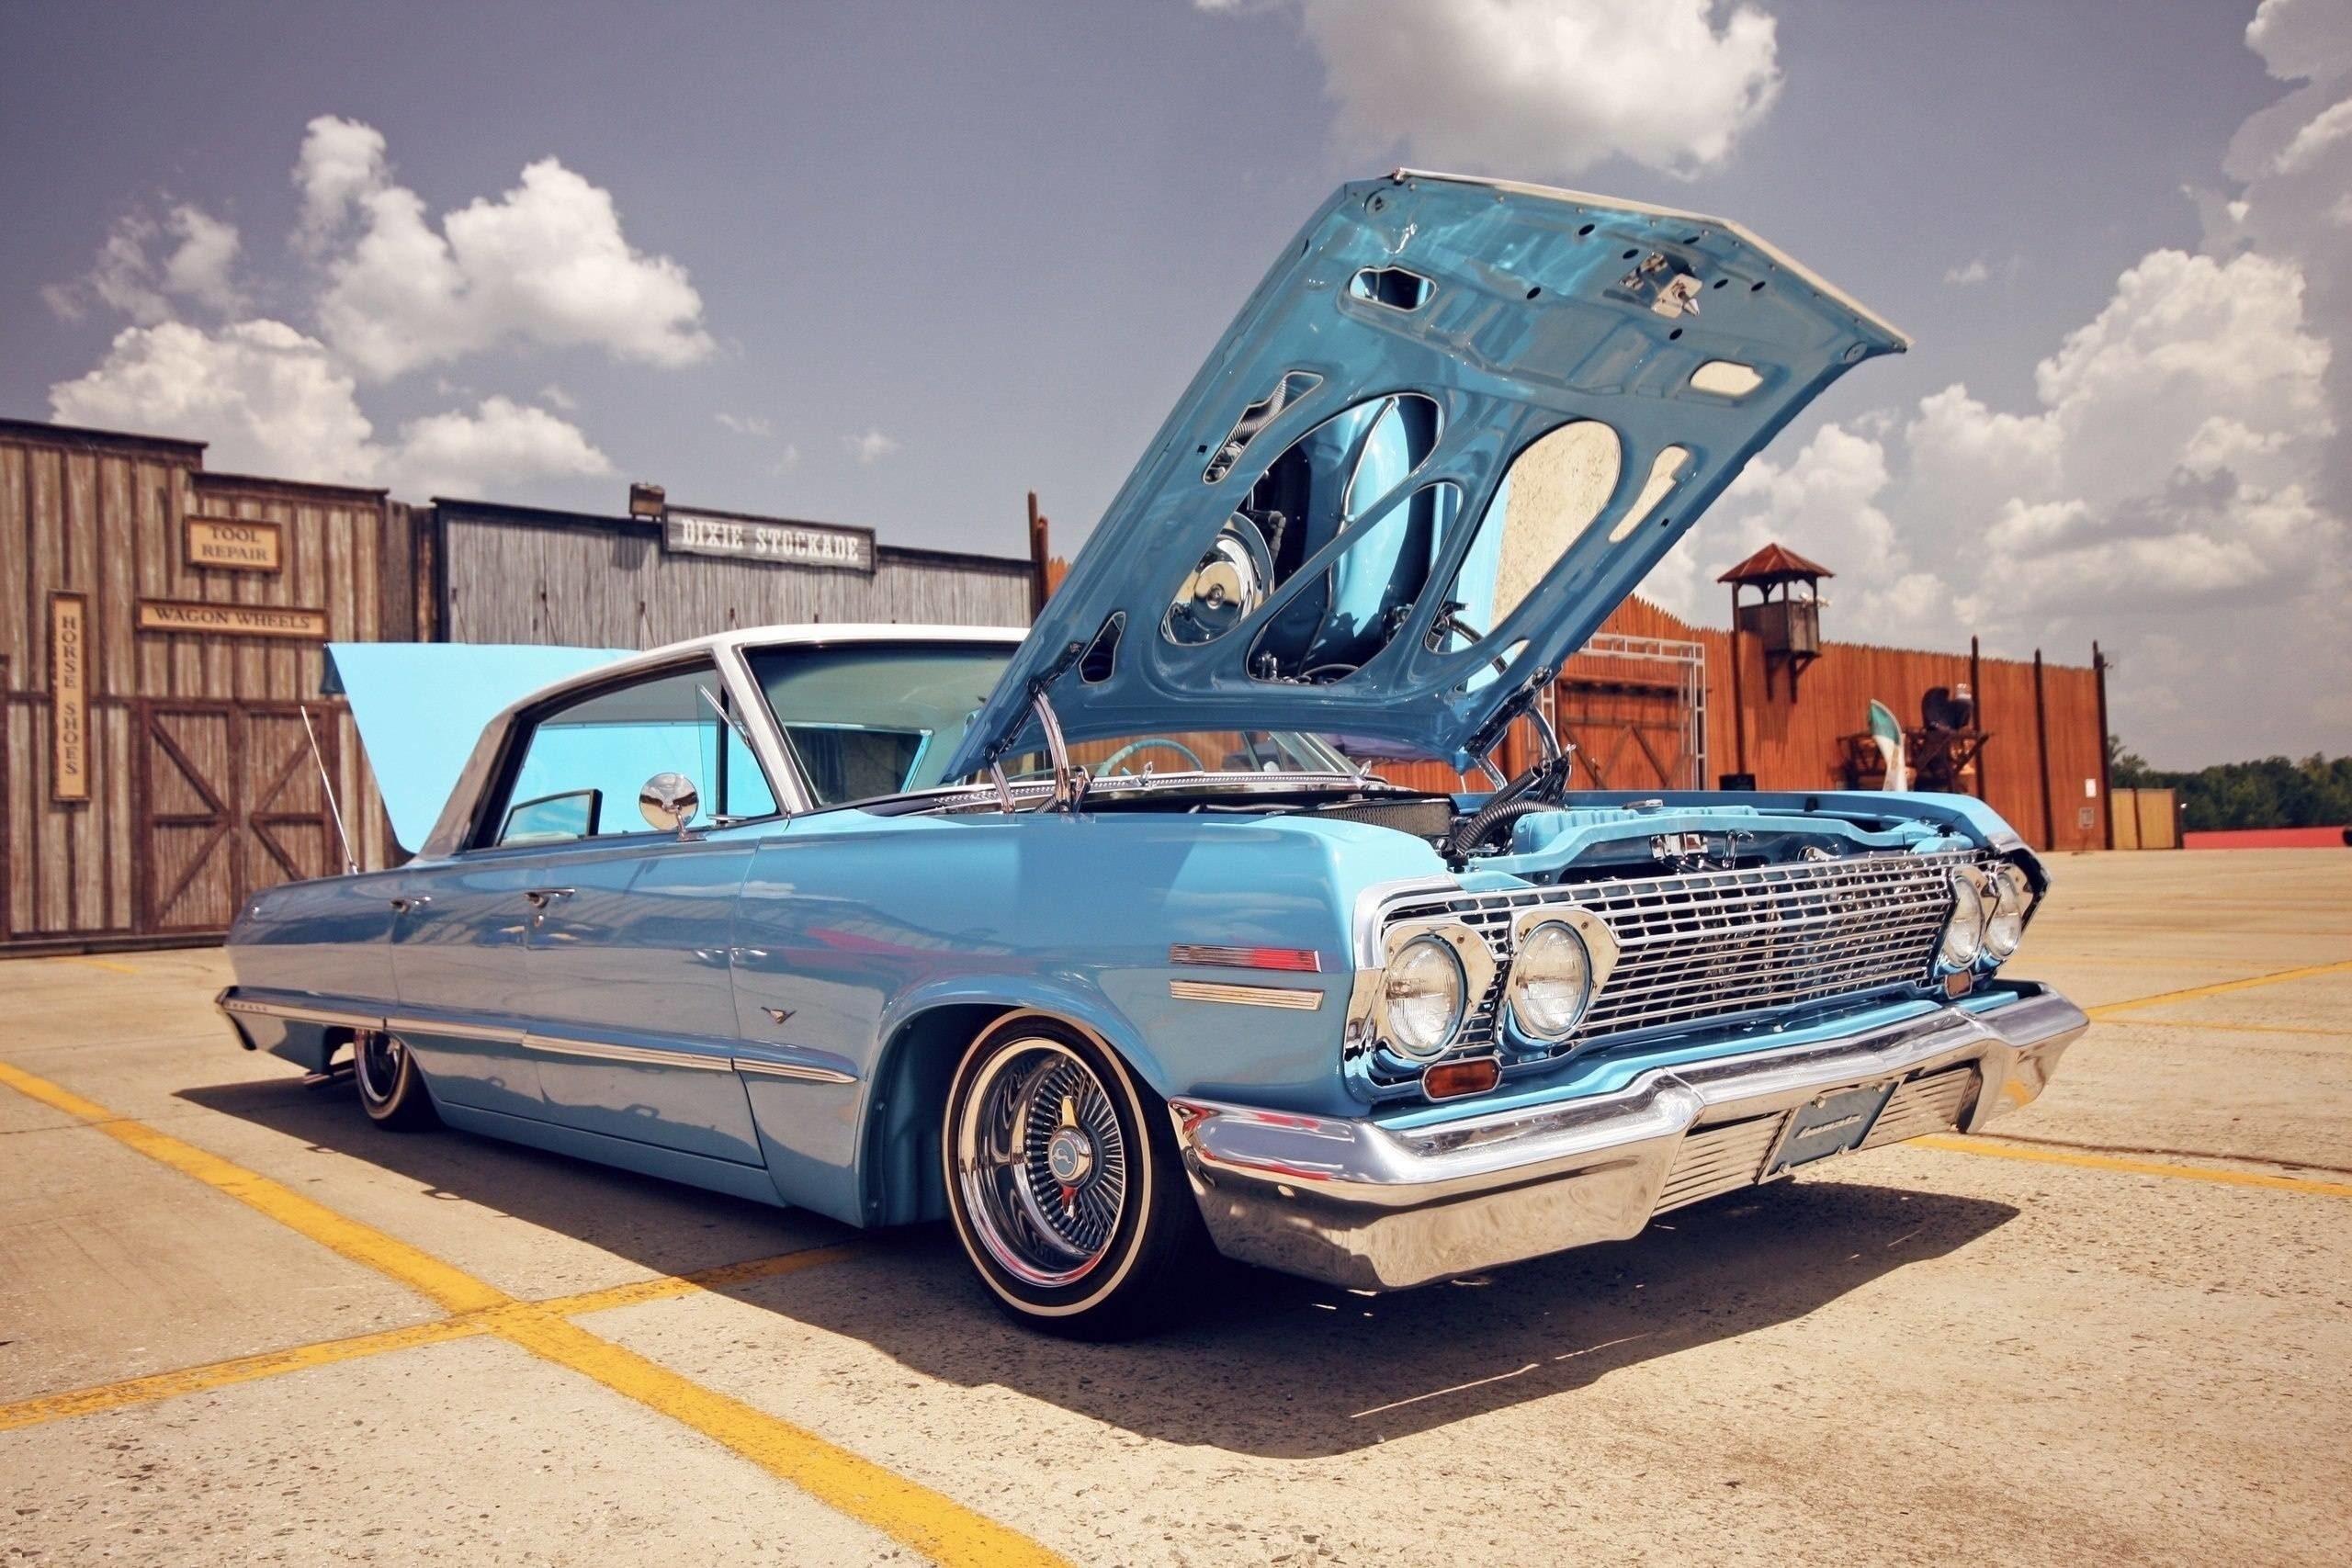 2560x1707 Download wallpaper Chevrolet Impala, lowrider, Car, cars free .